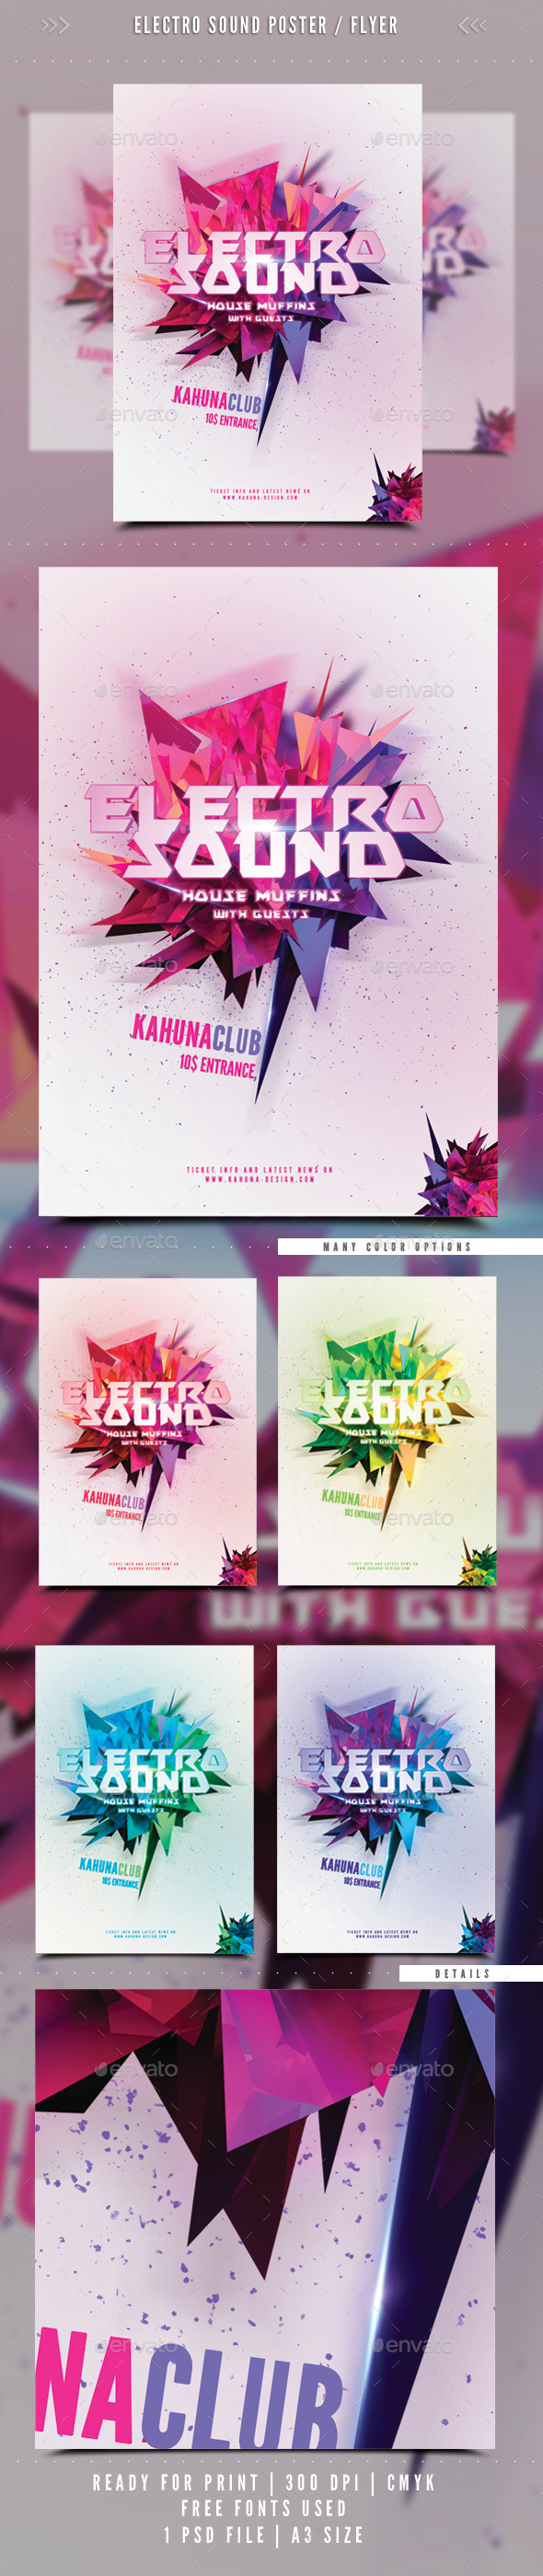 GraphicRiver Electro Sound Poster Flyer 02 8837461